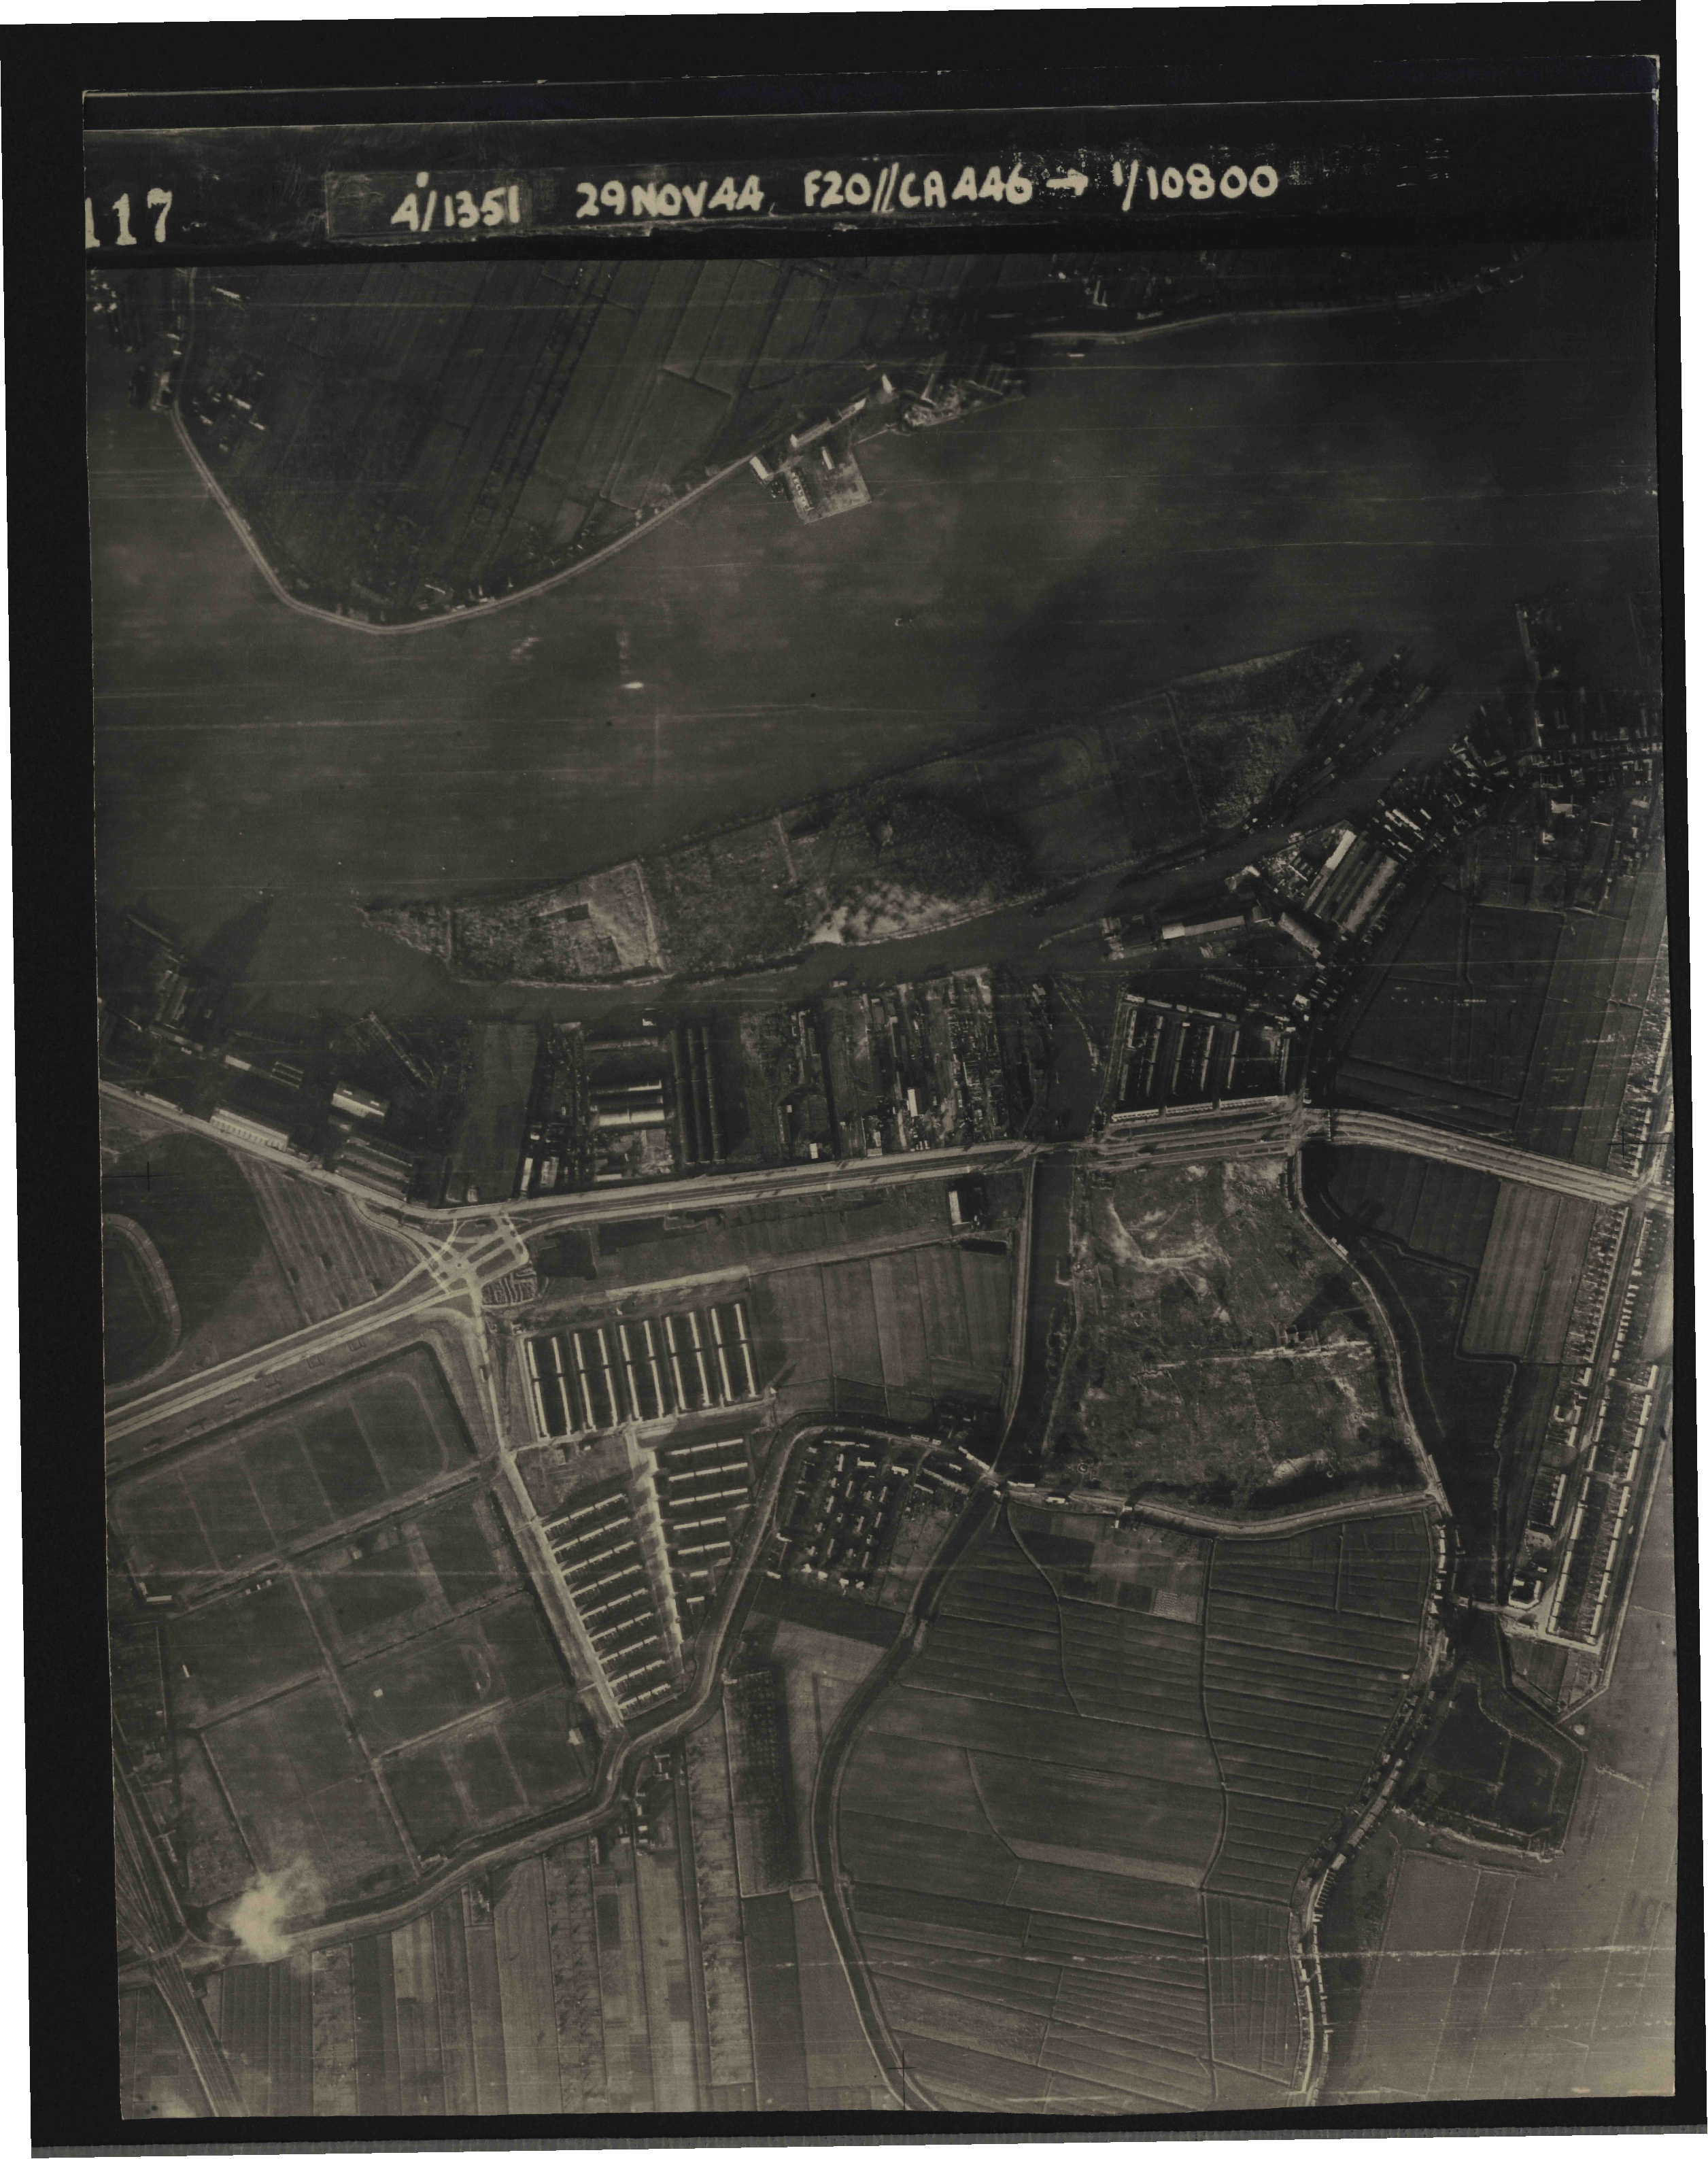 Collection RAF aerial photos 1940-1945 - flight 045, run 02, photo 3117